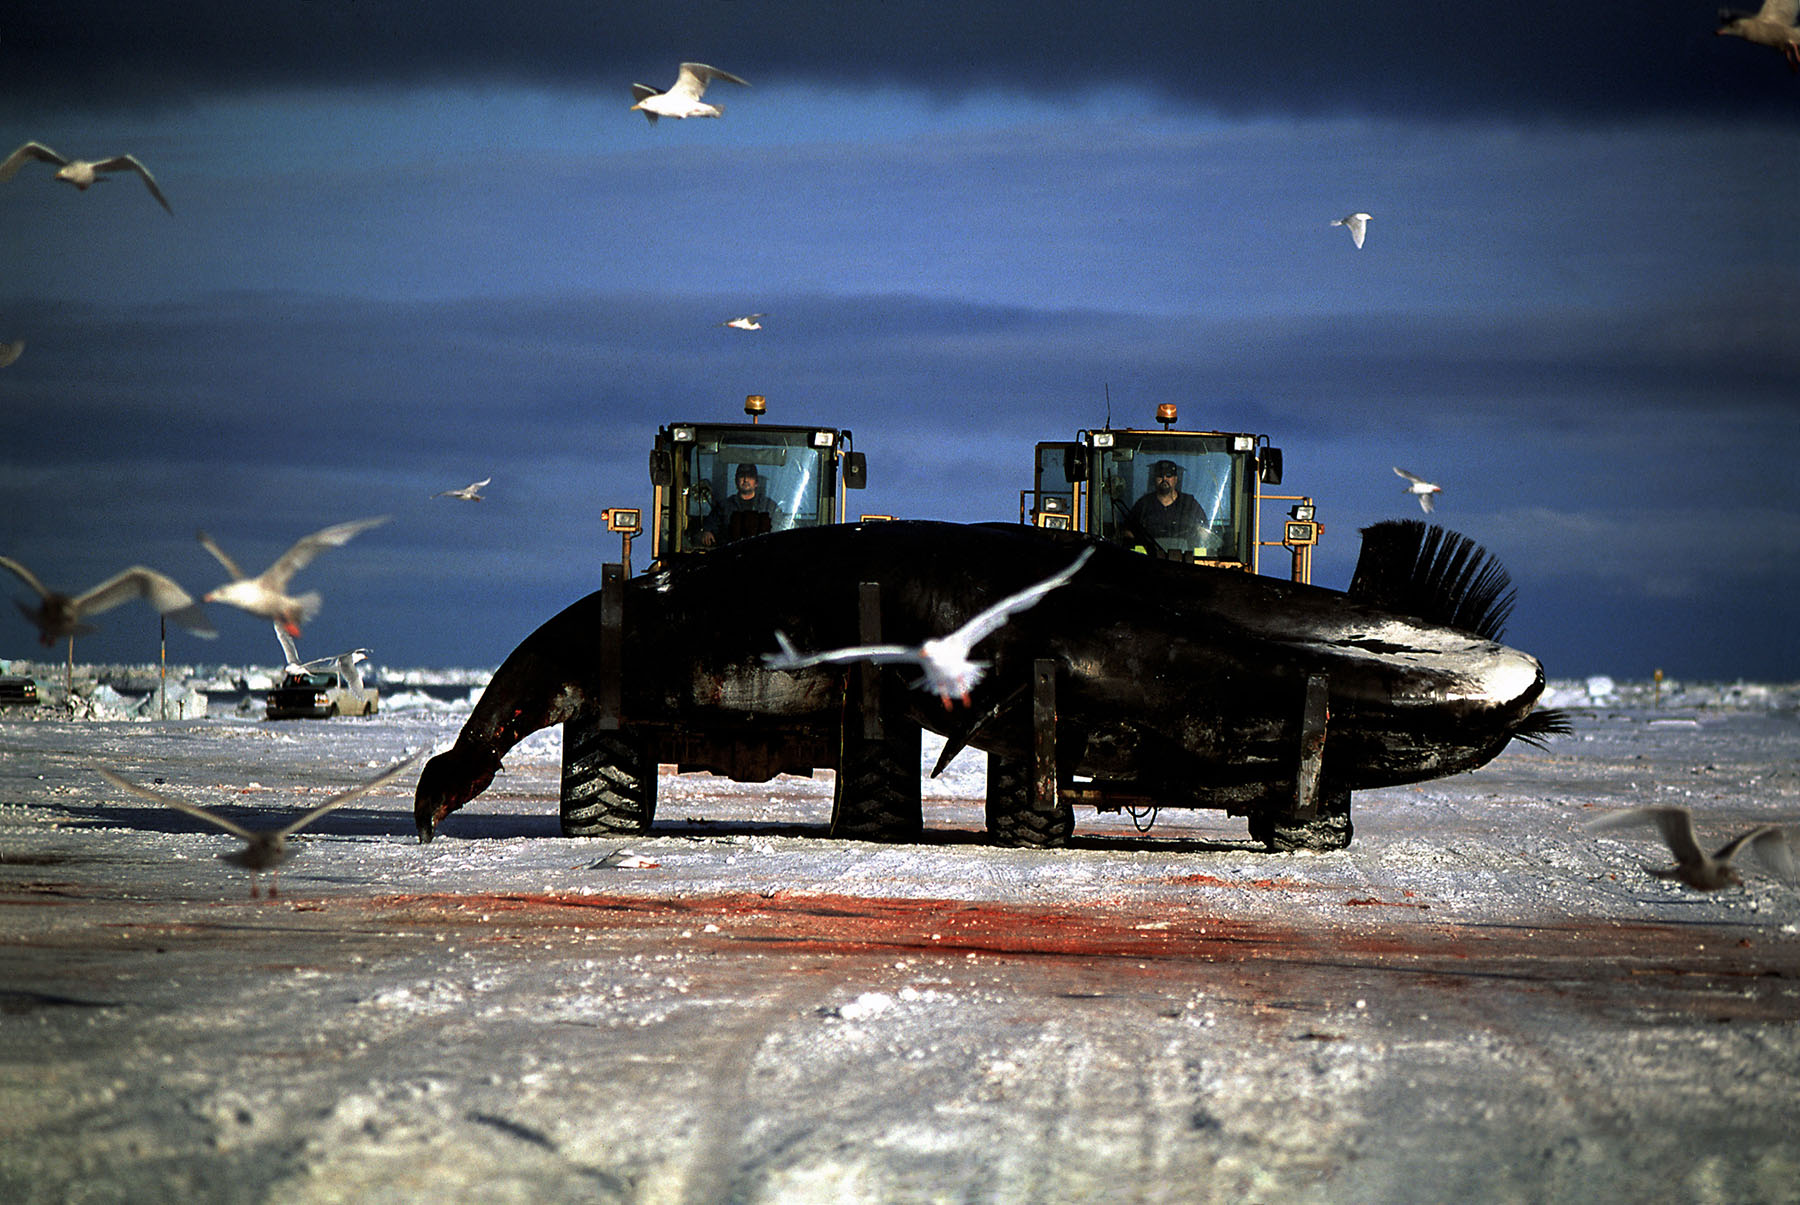 Loaders and Bowhead